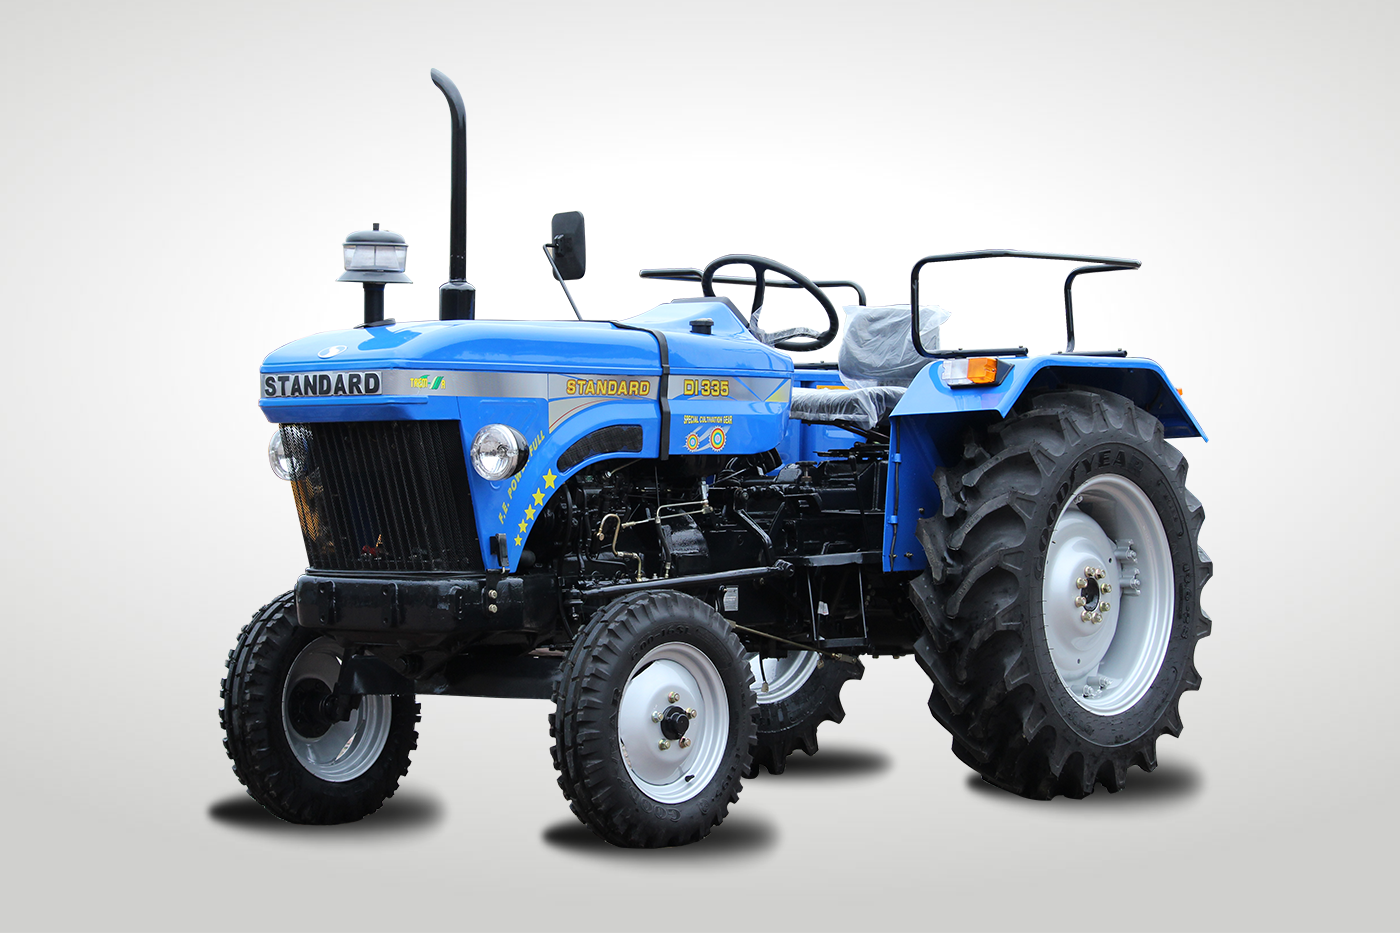 https://images.tractorgyan.com/uploads/79/standard-DI-335-tractorgyan.png